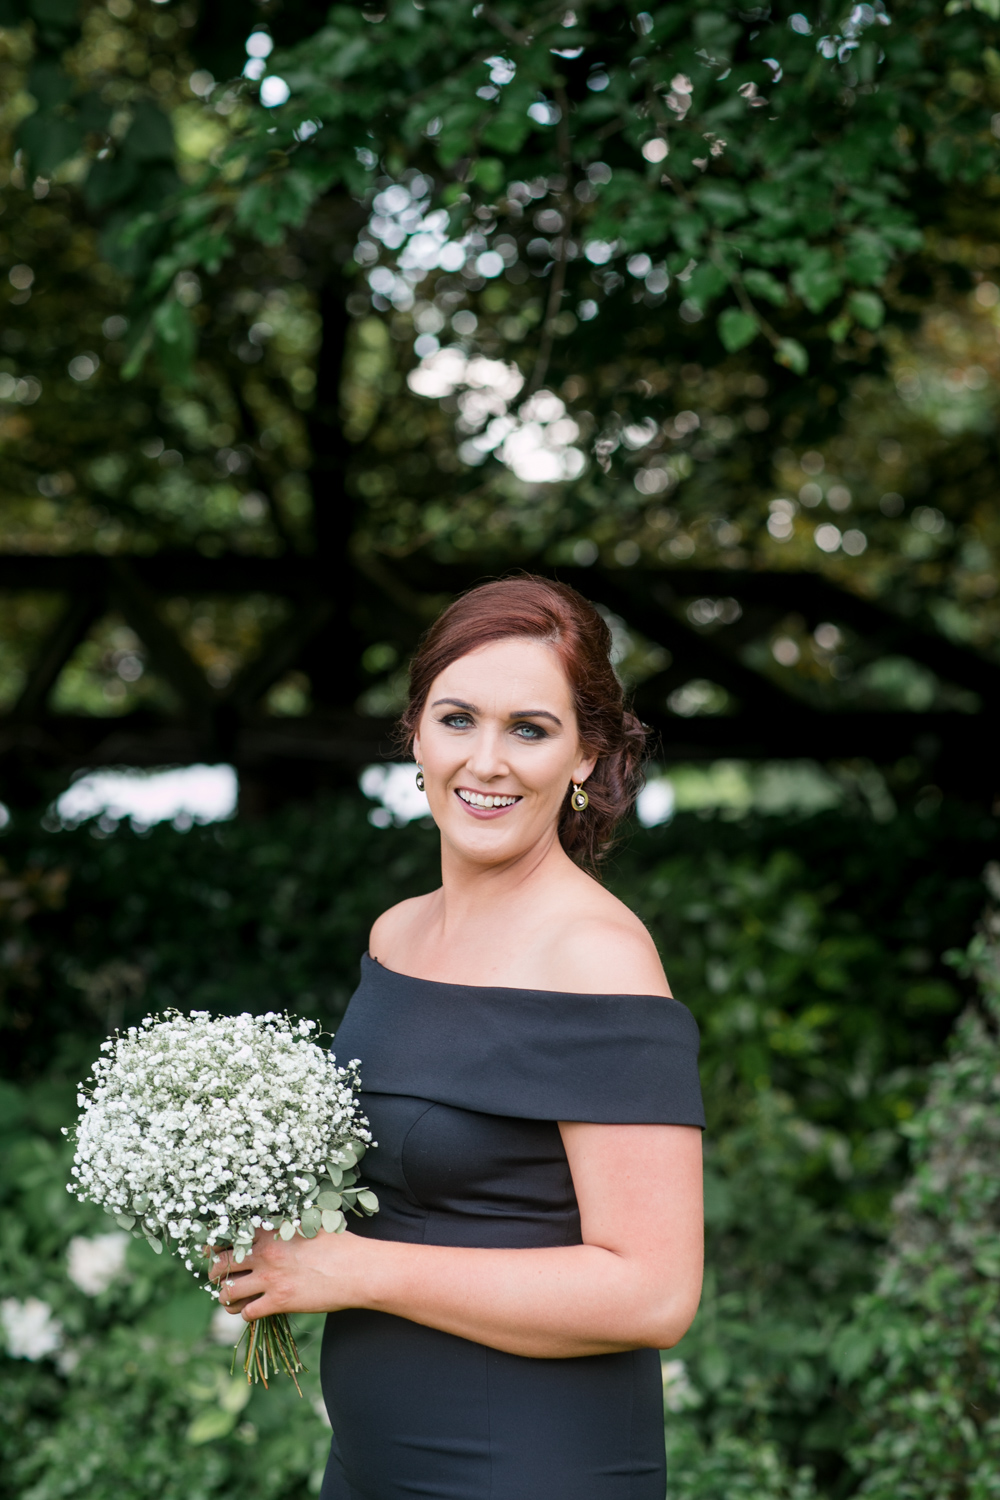 bridesmaid black dress for the black tie wedding off shoulder style